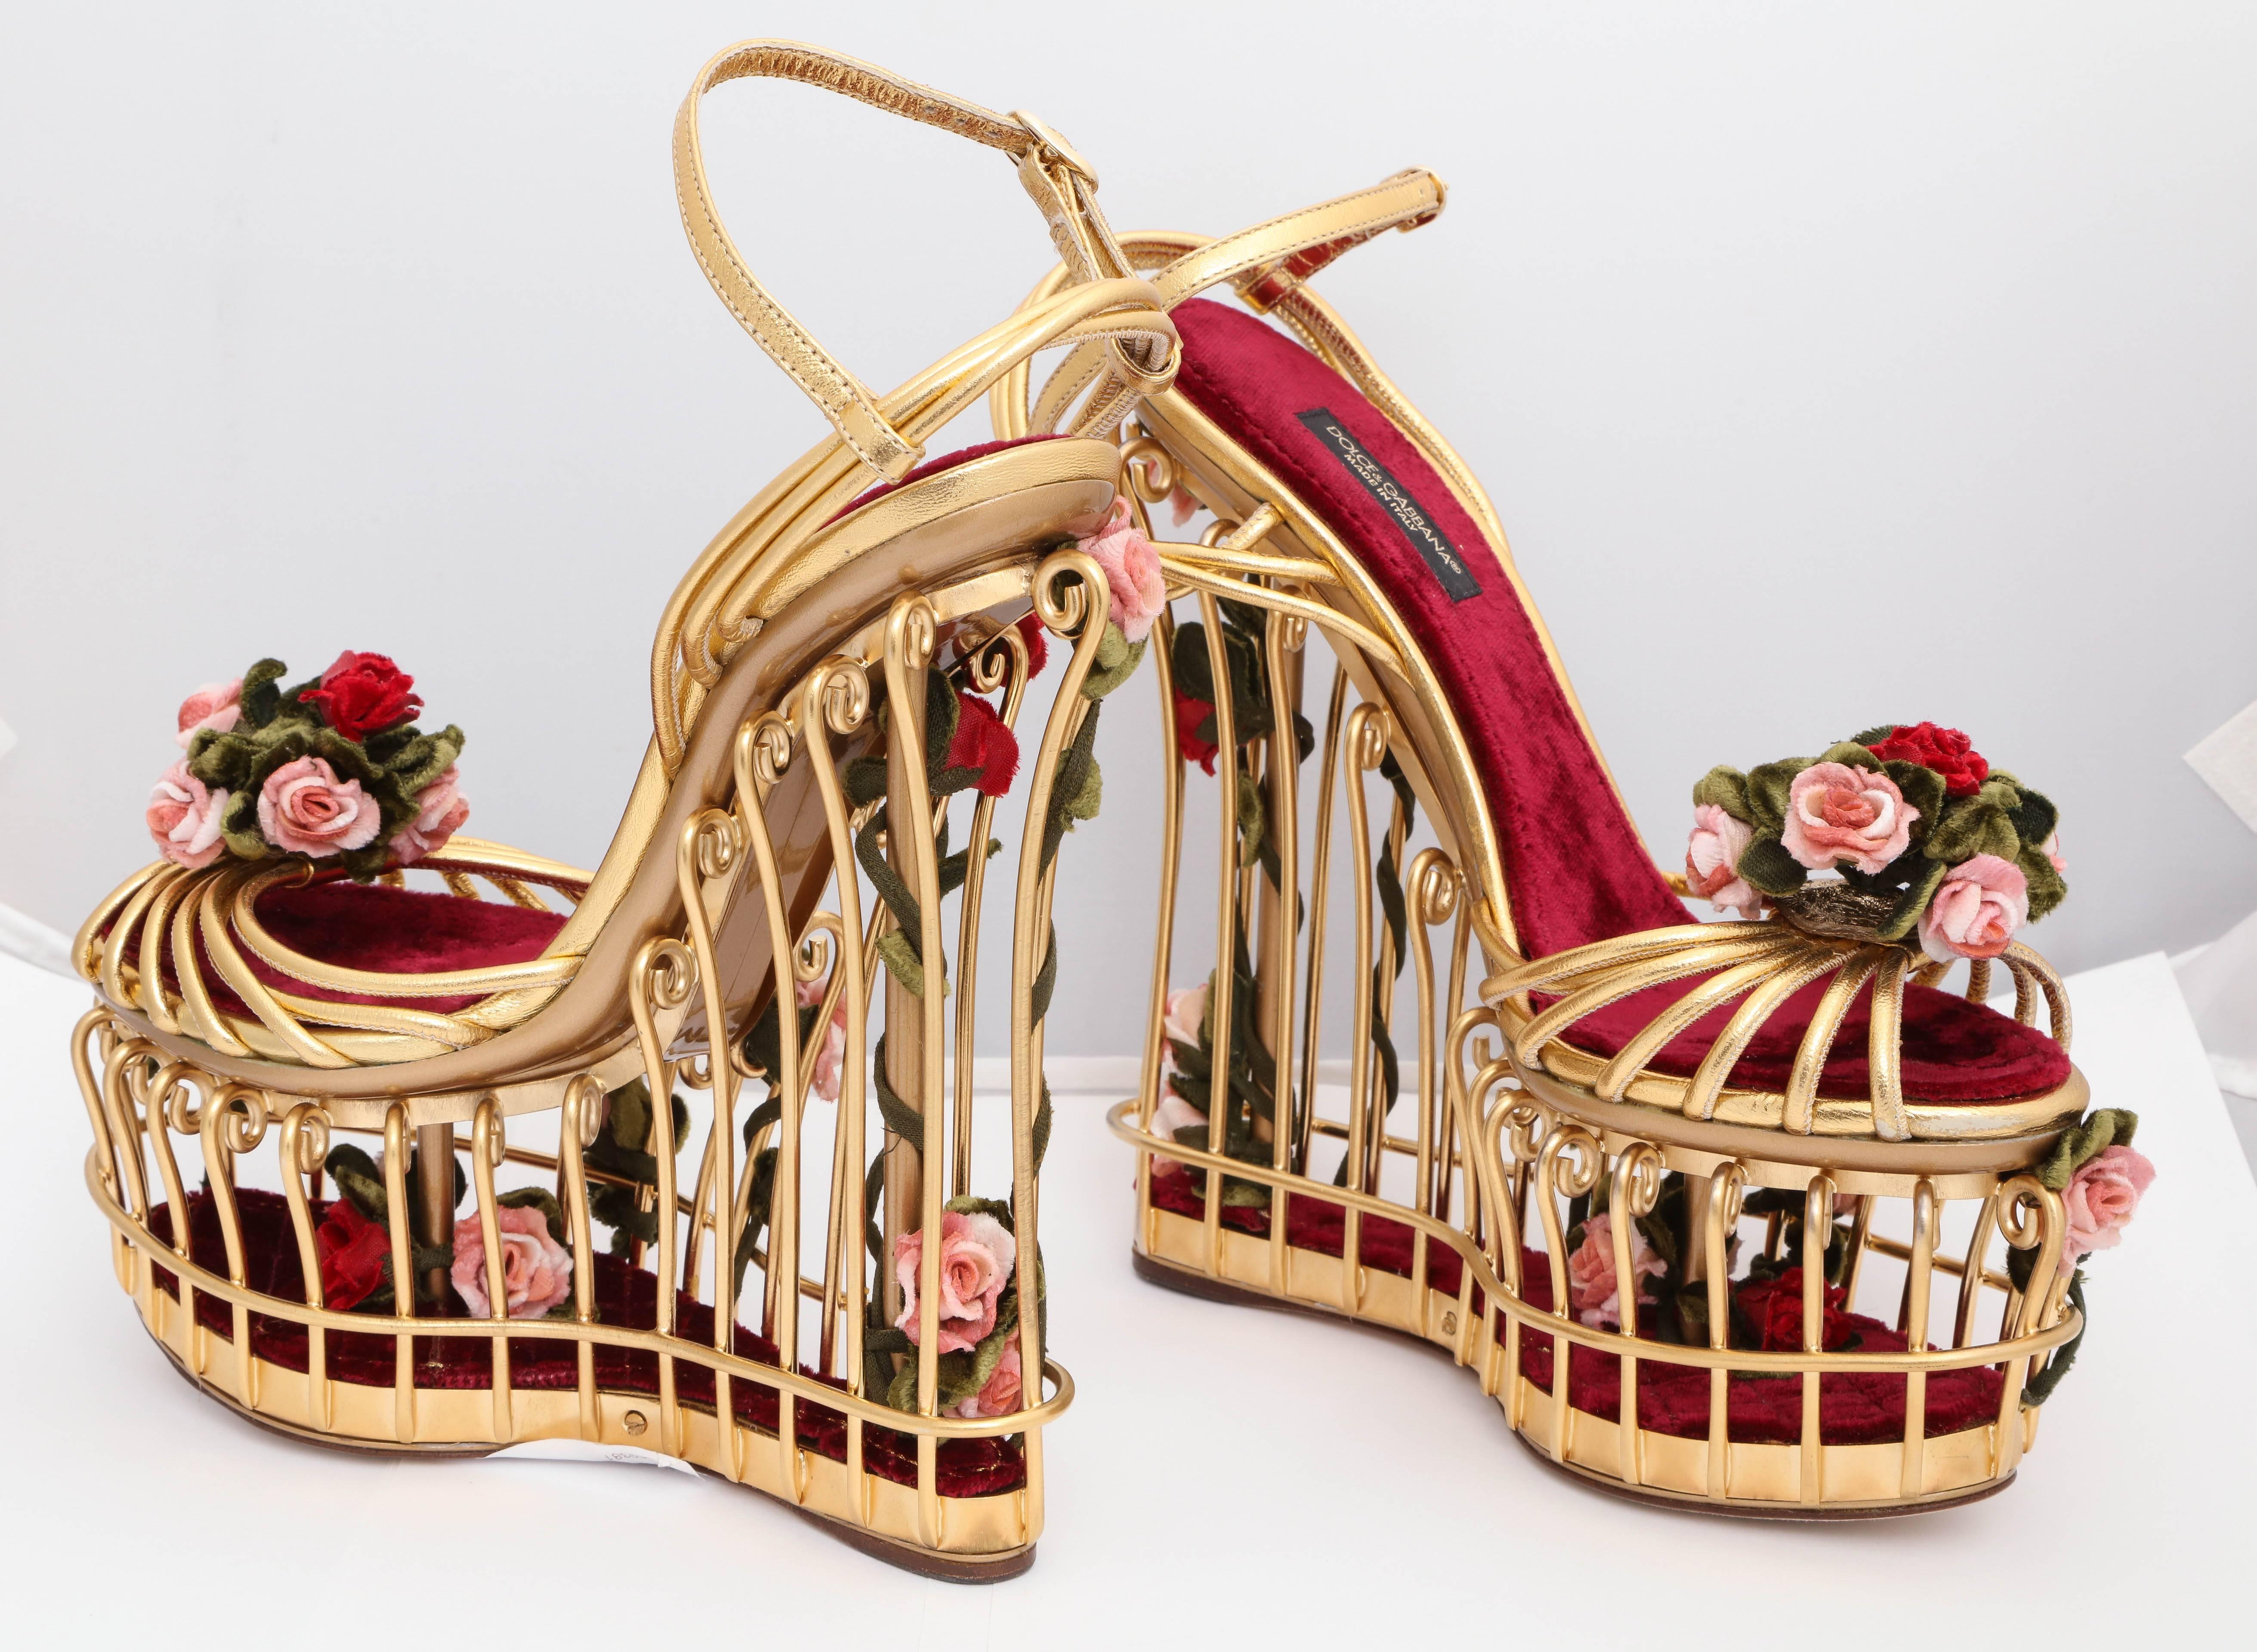 1ed6b351fdb Very rare Dolce and Gabbana Runway Cage Heel Shoes Piece of Art! at 1stdibs